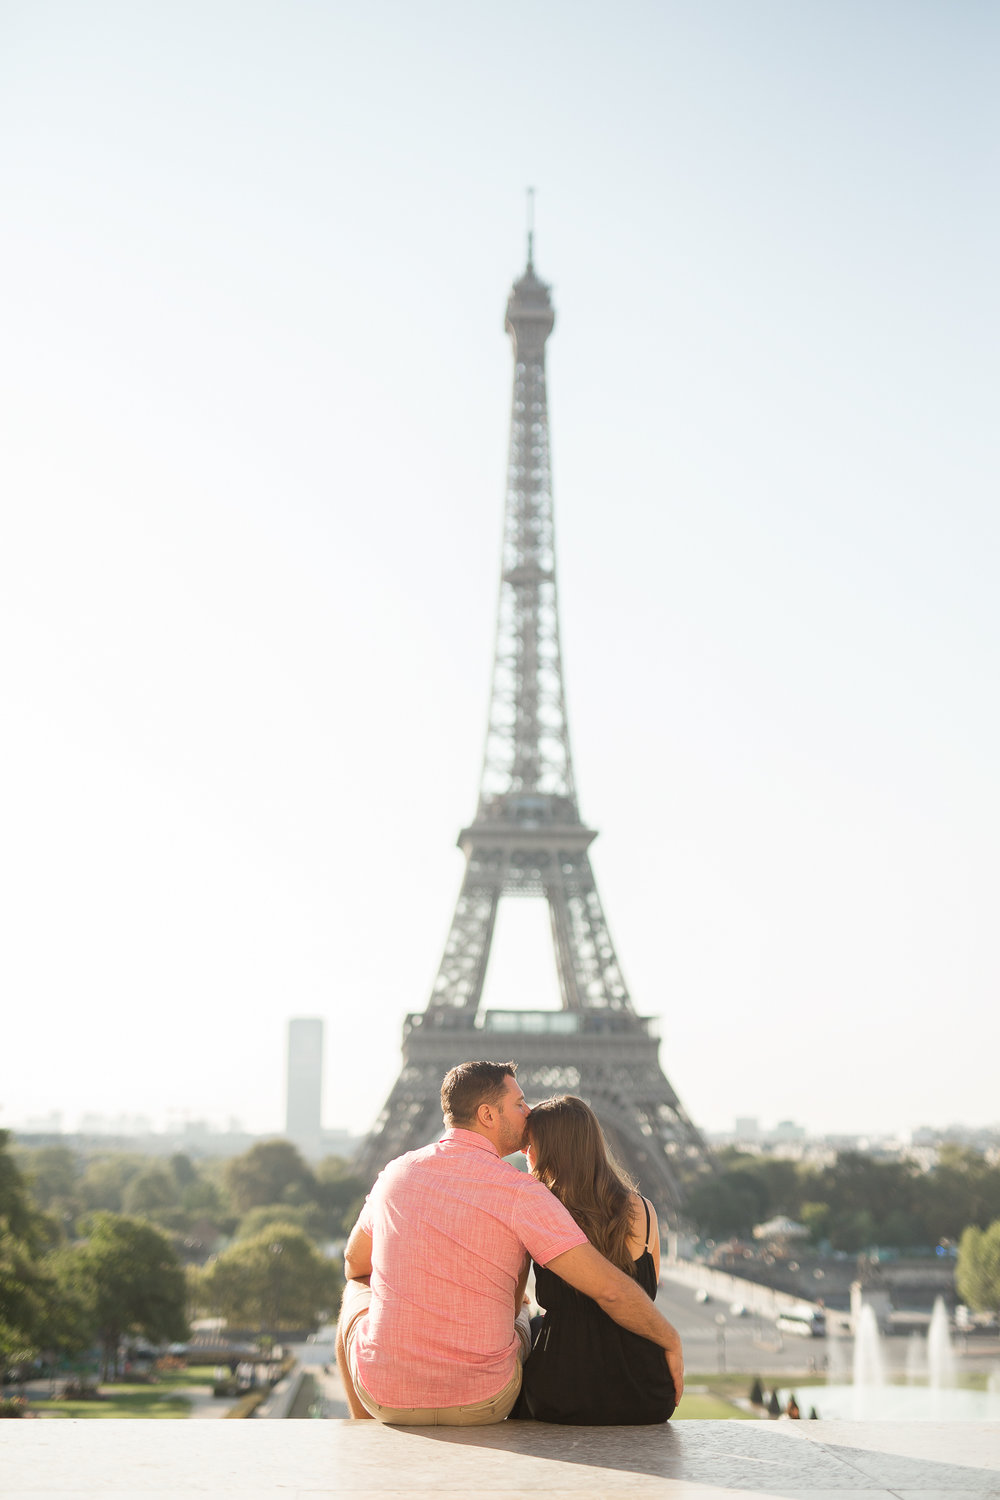 eiffel-tower-pregnancy-announcement-paris-english-speaking-photographers-katie-donnelly-photography_003.jpg